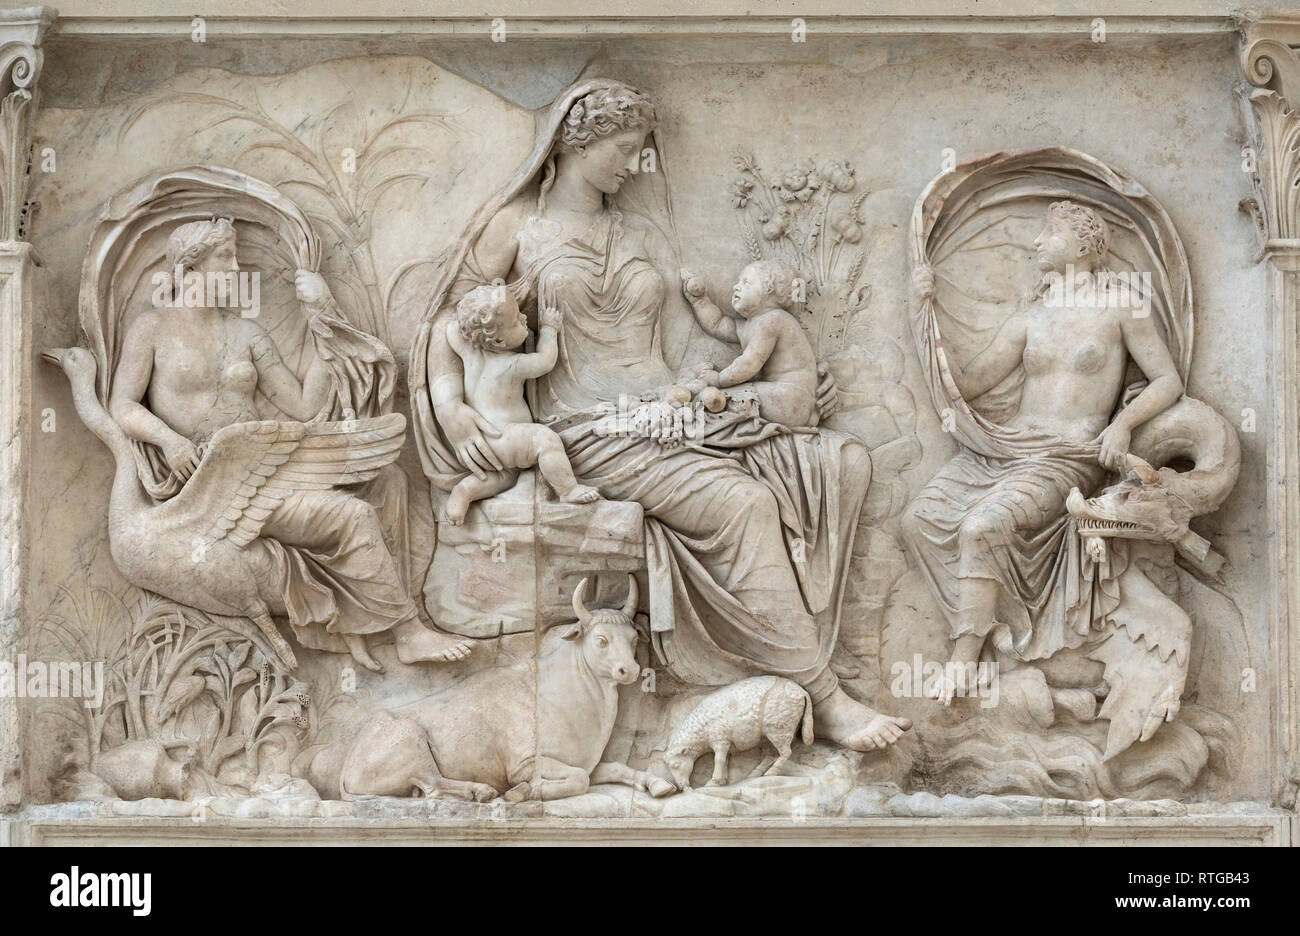 Rome. Italy. The Tellus (or Pax) relief panel on the east wall (back) of the Ara Pacis Augustae, 13-9 BCE, Ara Pacis Museum. - Stock Image